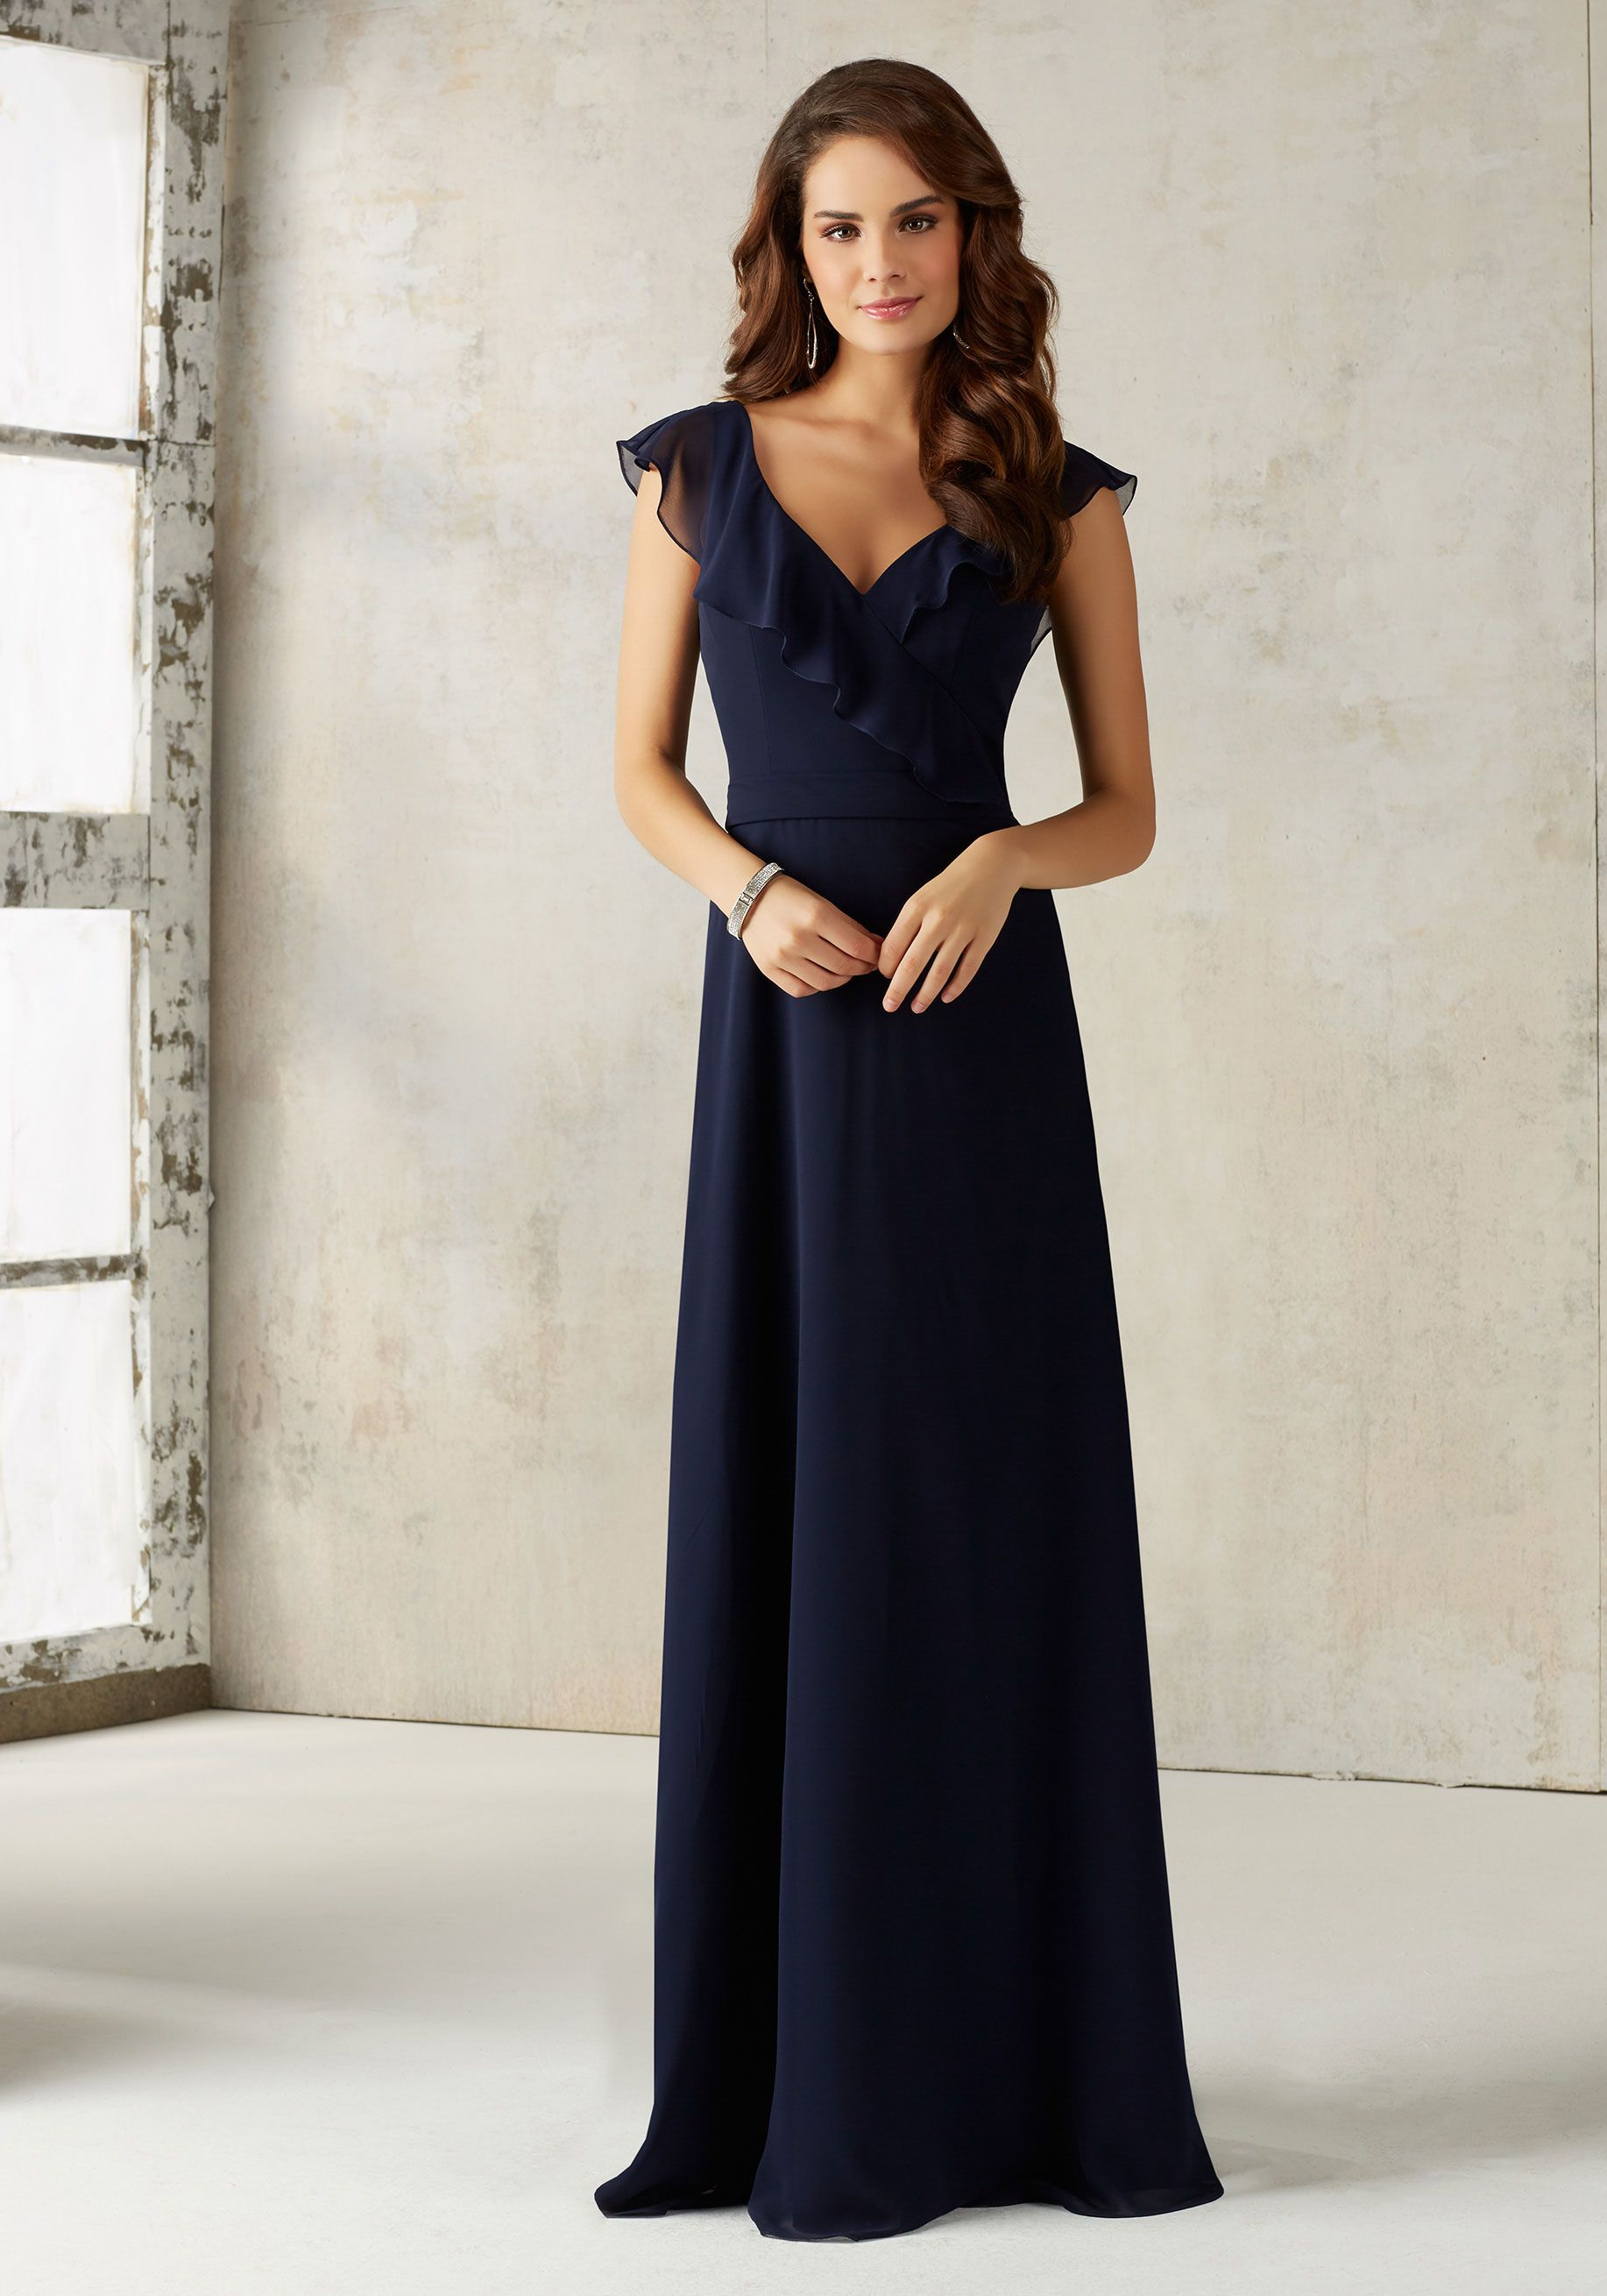 Bridesmaids Dress With V Neck And Ruffle Neckline Morilee Mori Lee Bridesmaid Dresses Bridesmaid Dresses 2017 Bridesmaid Dress Styles